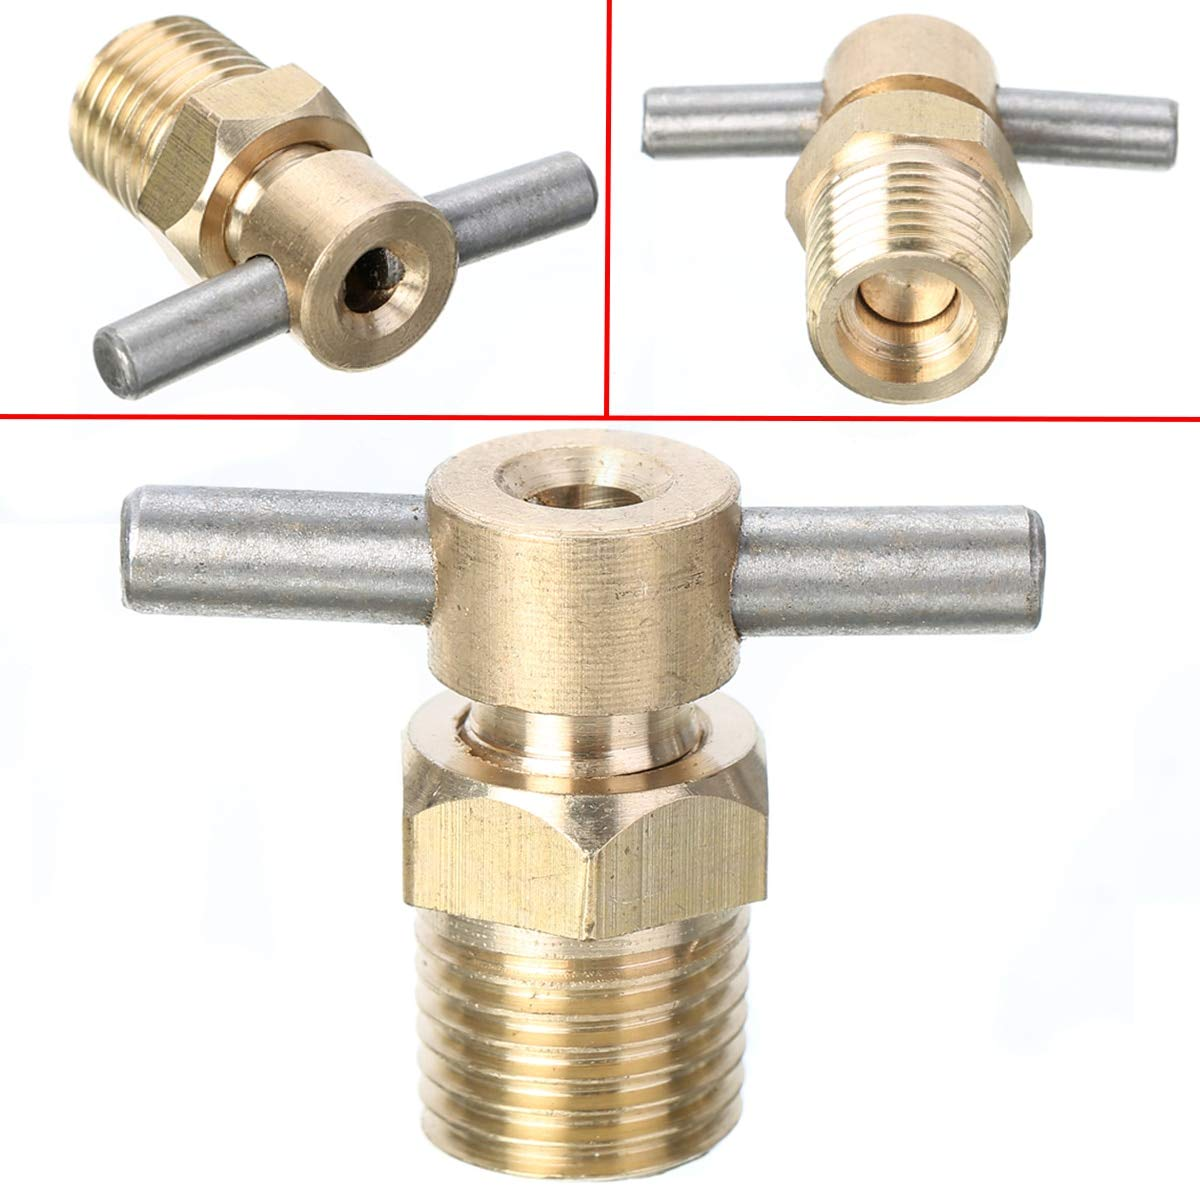 Fincos Durable 1//4 Inch NPT Brass Drain Valve Air Compressor Drain Valve for Air Compressor Tank Replacement Part